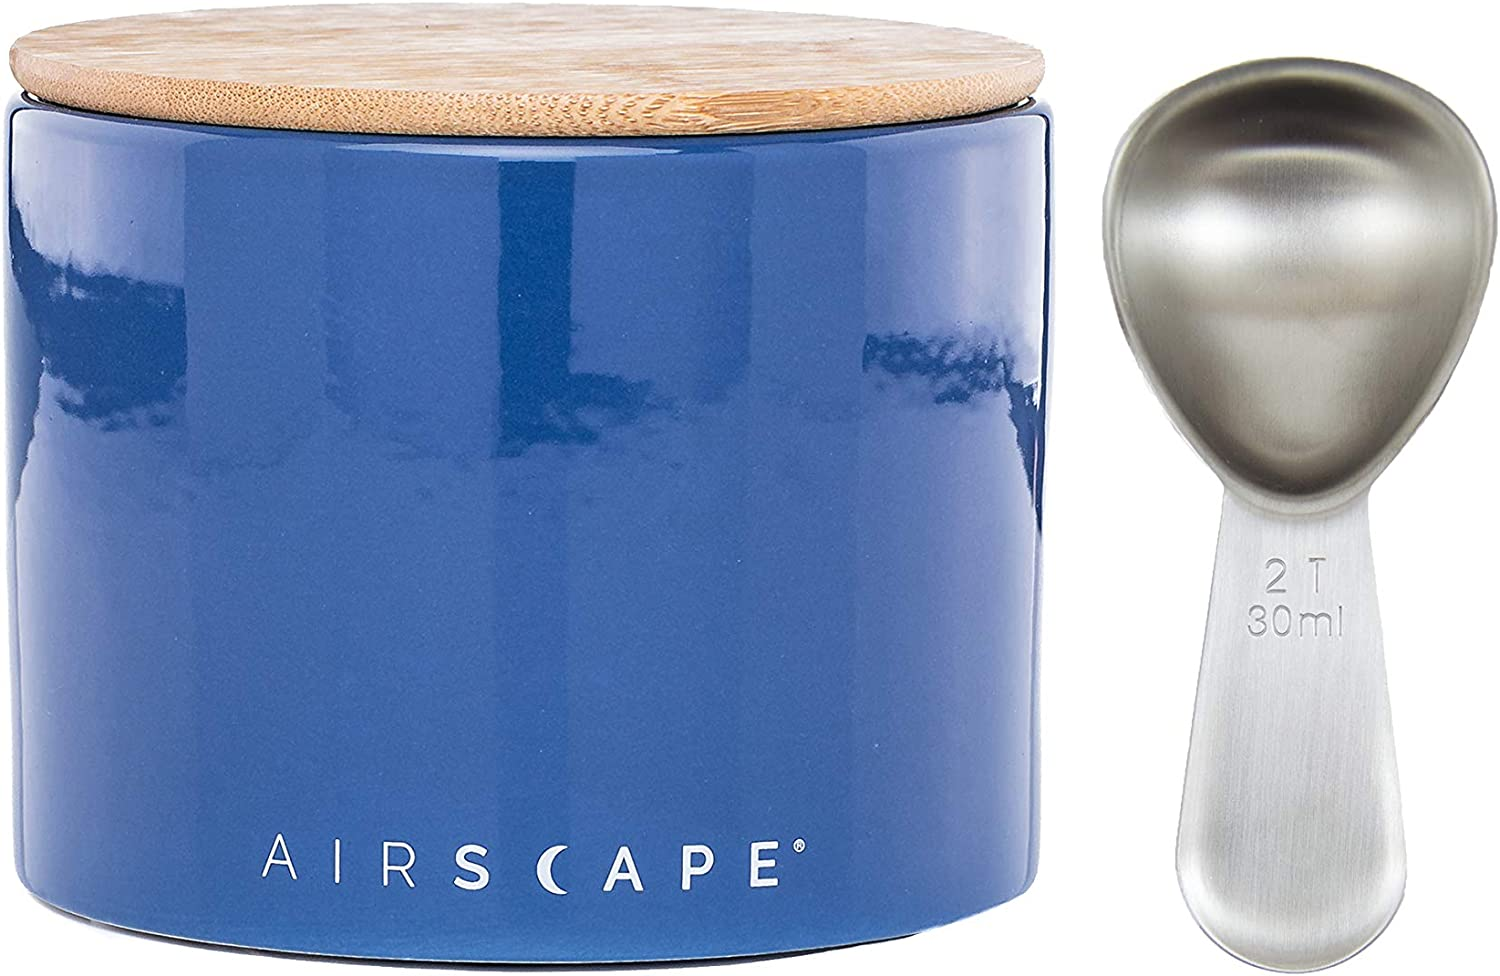 Airscape Ceramic Coffee and Food Storage Canister with Scoop - Patented Airtight Inner Lid Releases CO2 and Preserves Food Freshness - Glazed Ceramic with Bamboo Top - 4